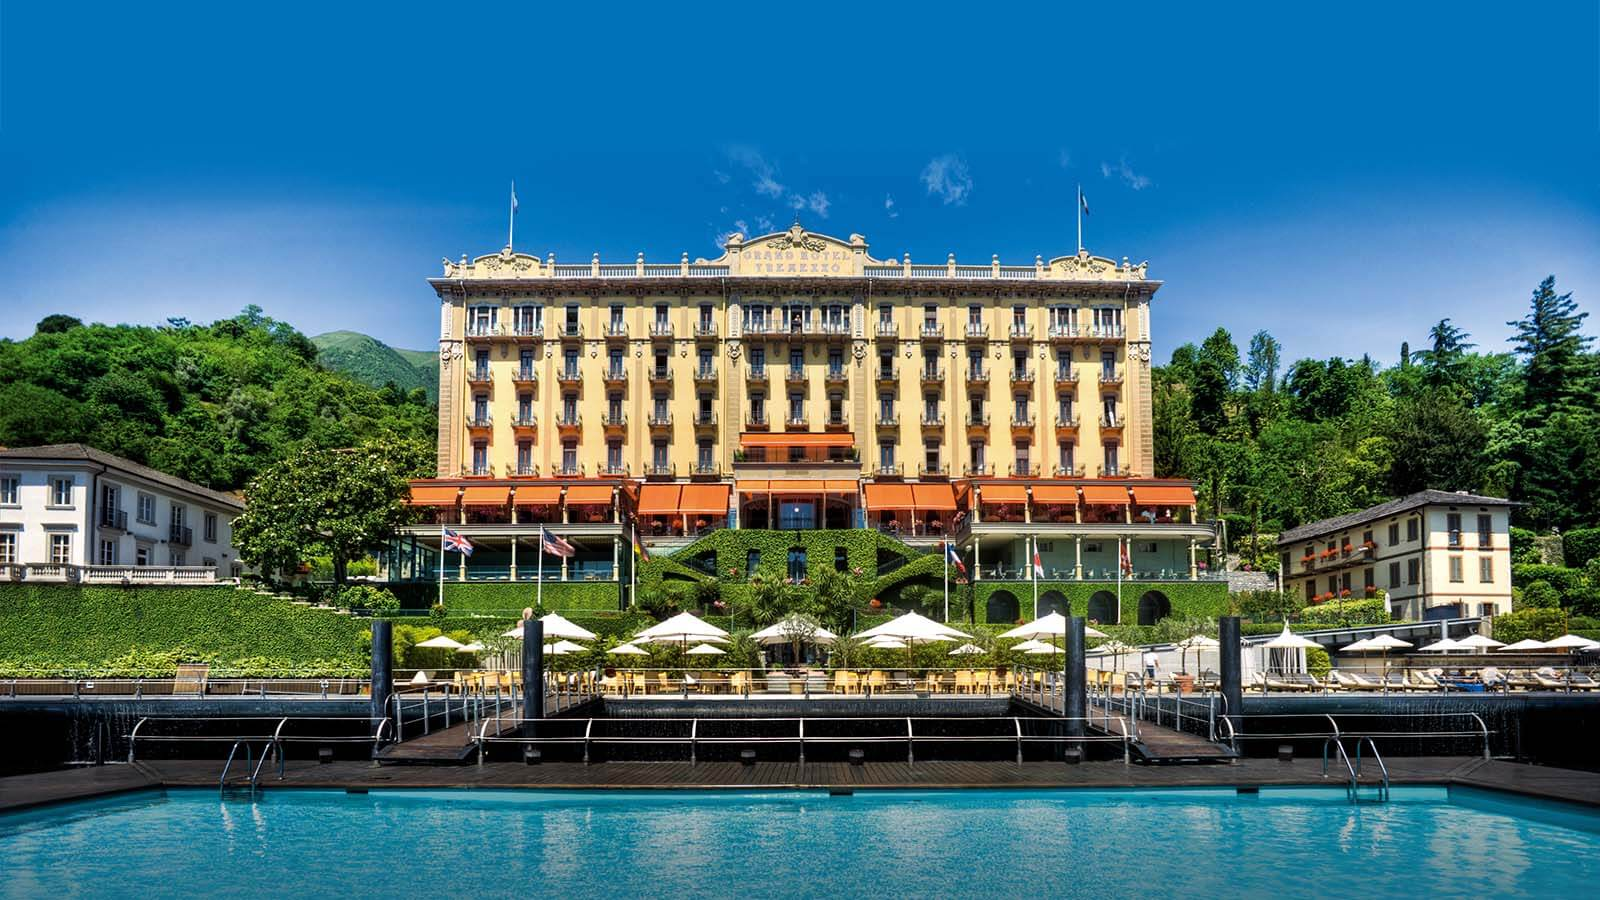 Exterior daytime of the Grand Hotel Tremezzo in Lake Como, Italy.